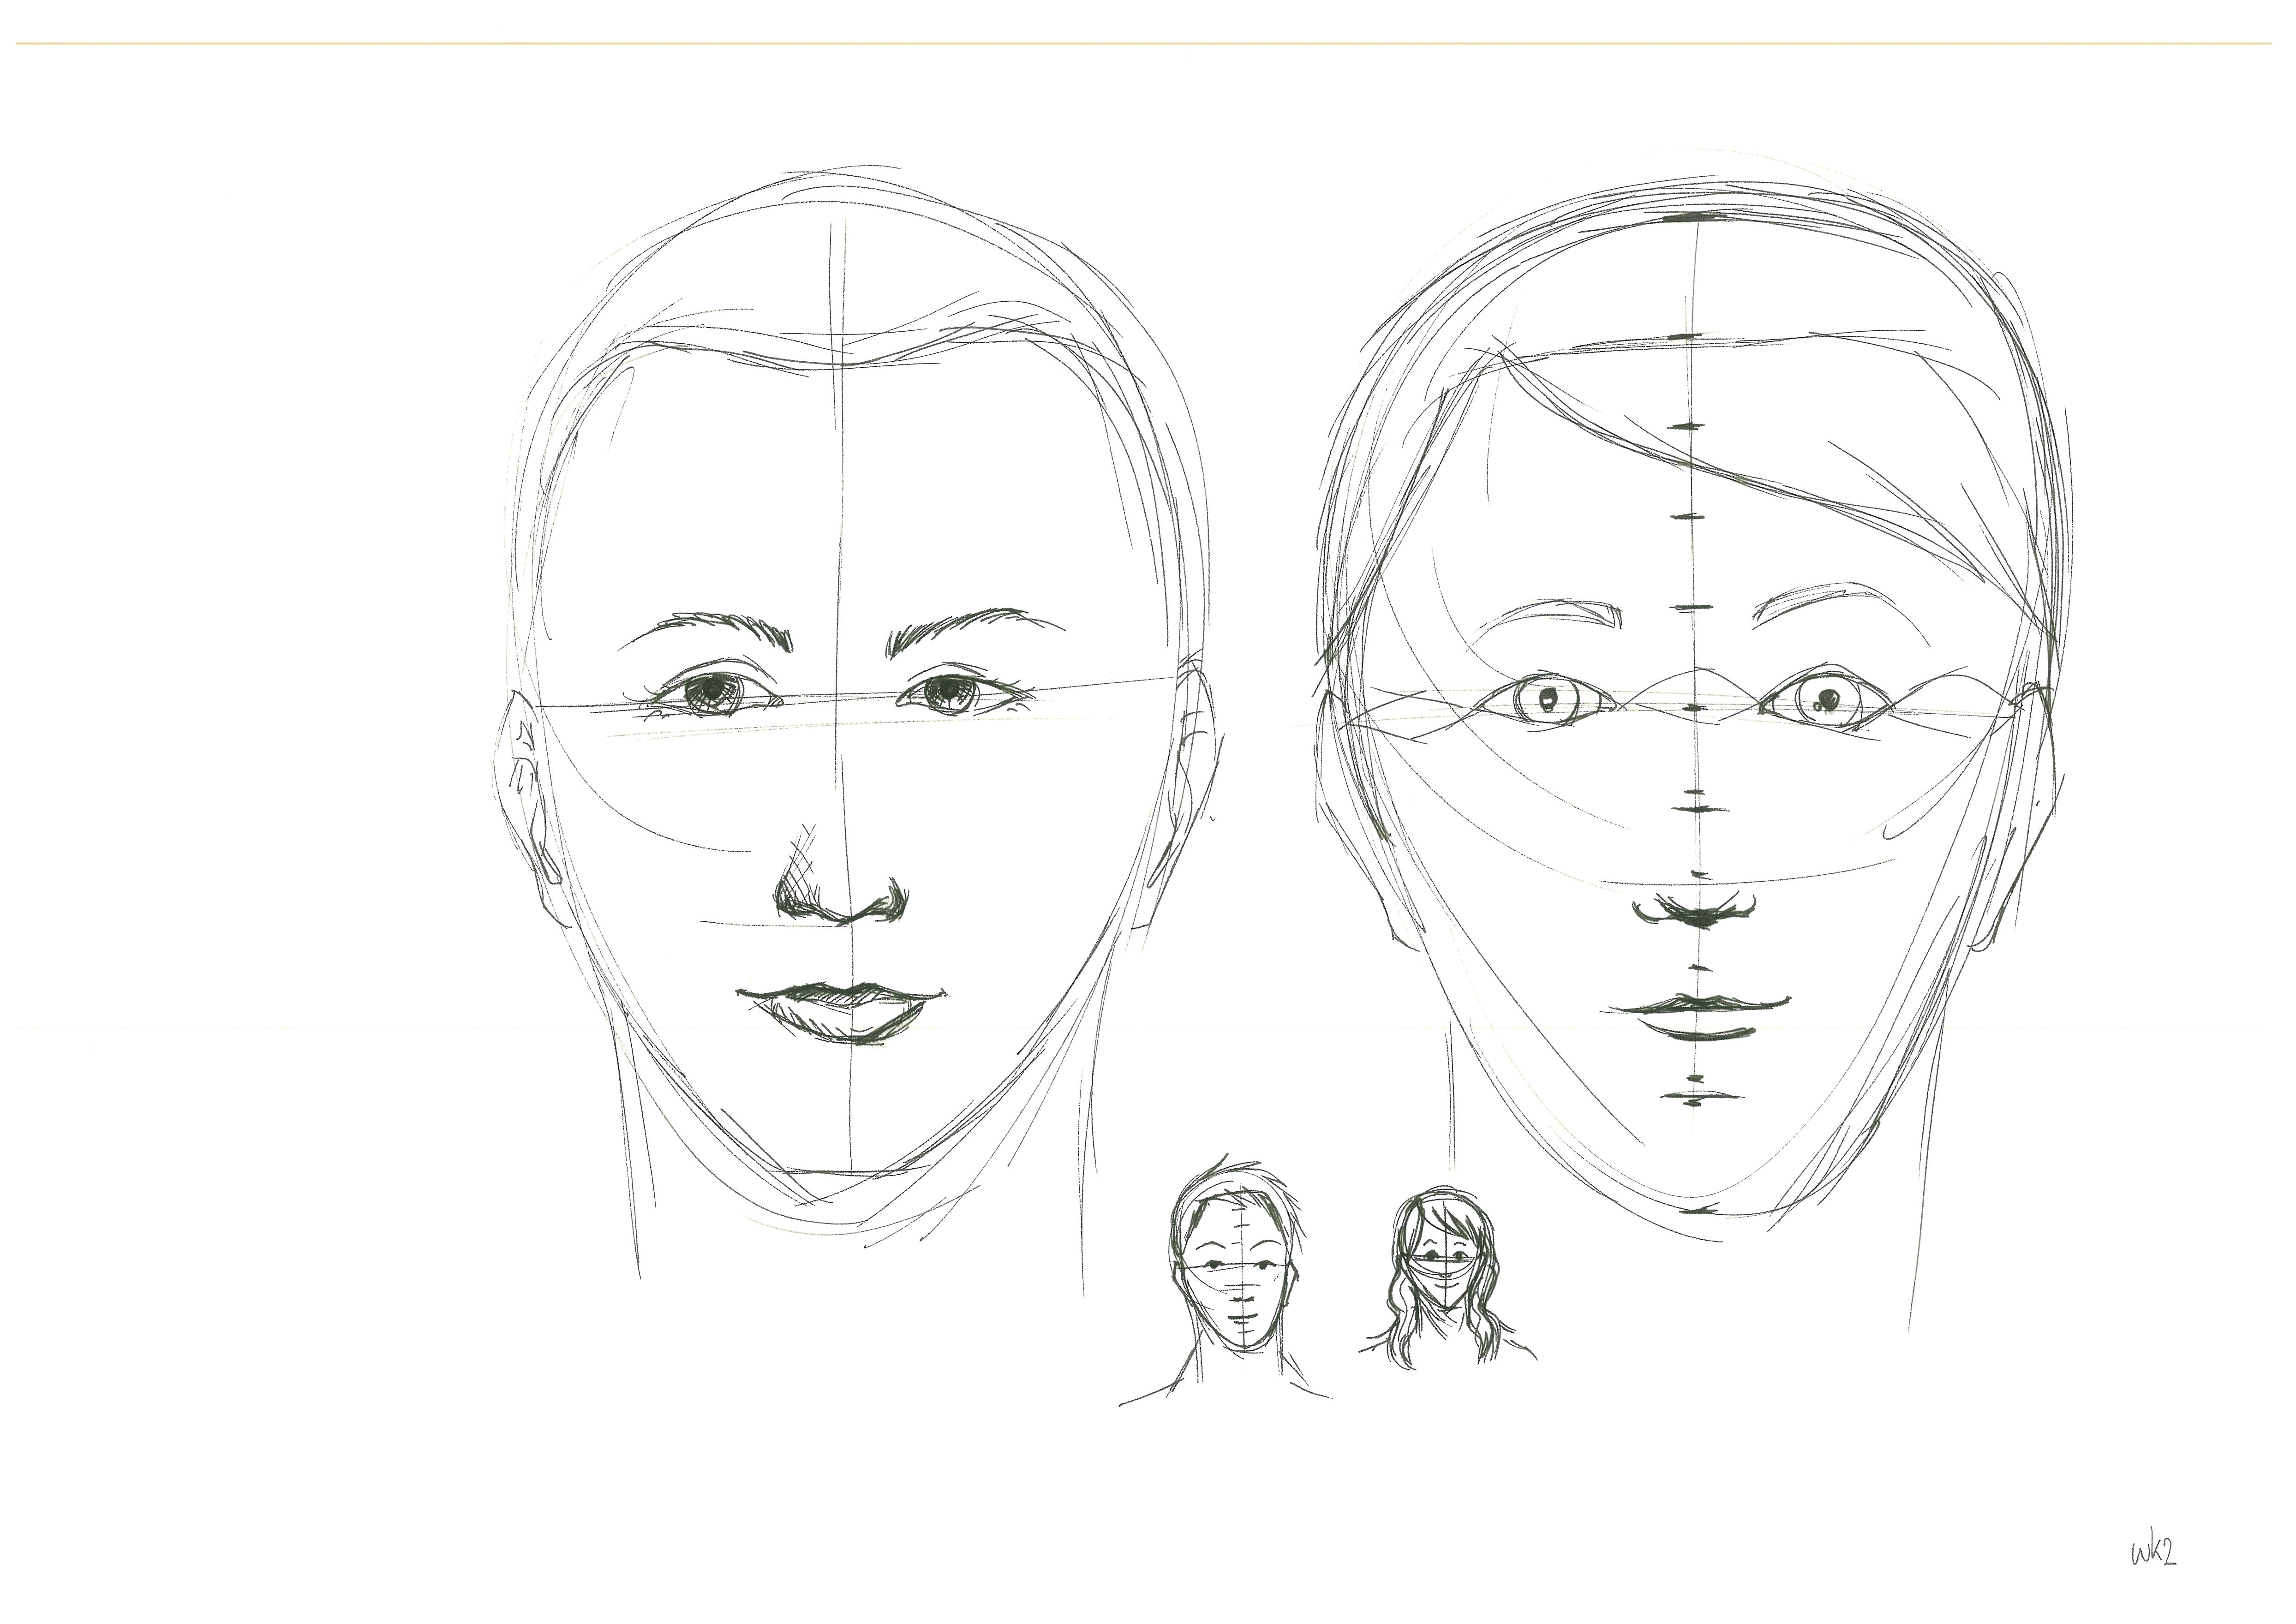 How To Draw A Human Face In Coreldraw